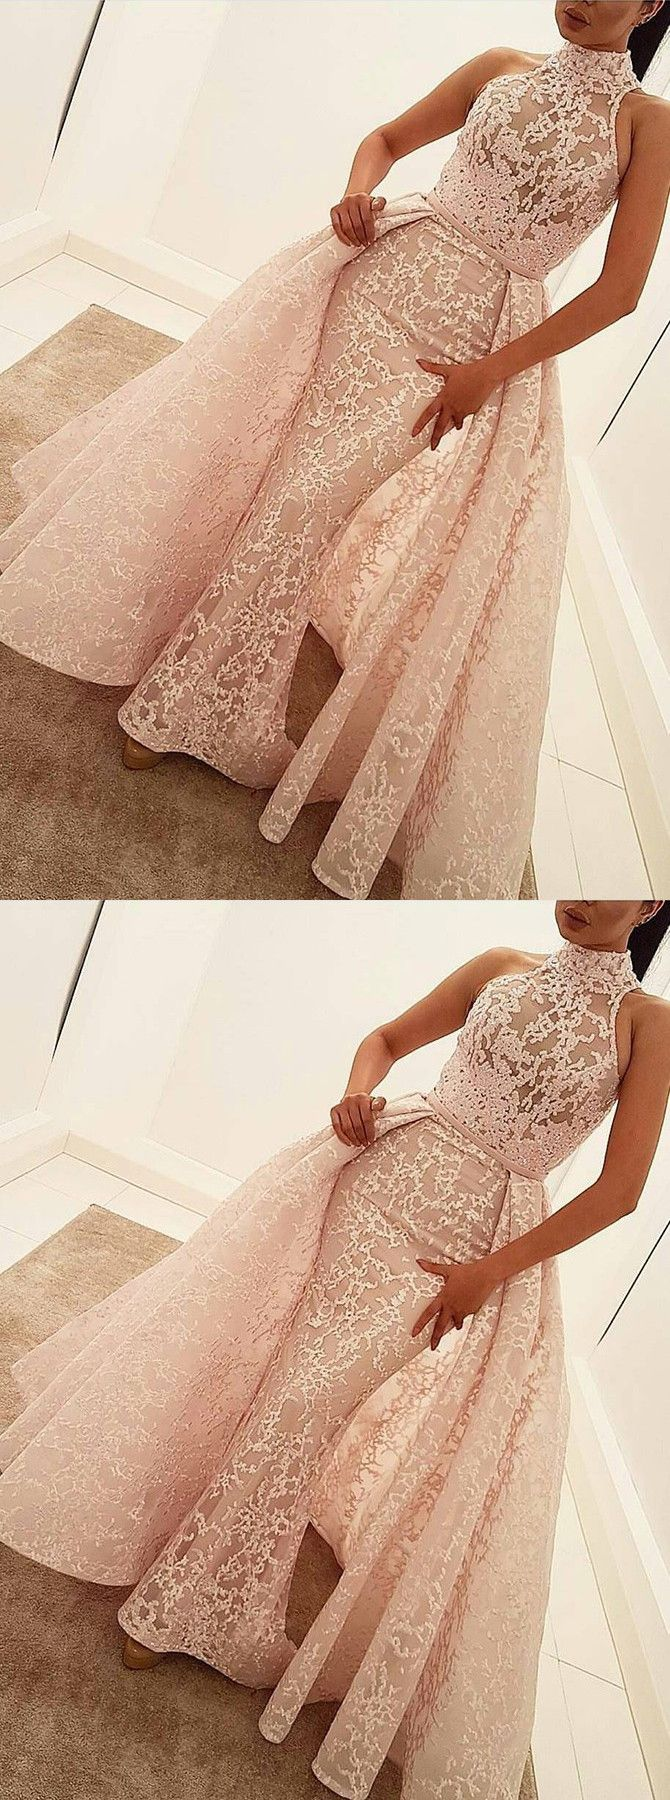 2017 prom dresses,mermaid prom dresses,lace prom dresses,long prom dresses,elegant prom dresses @simpledress2480